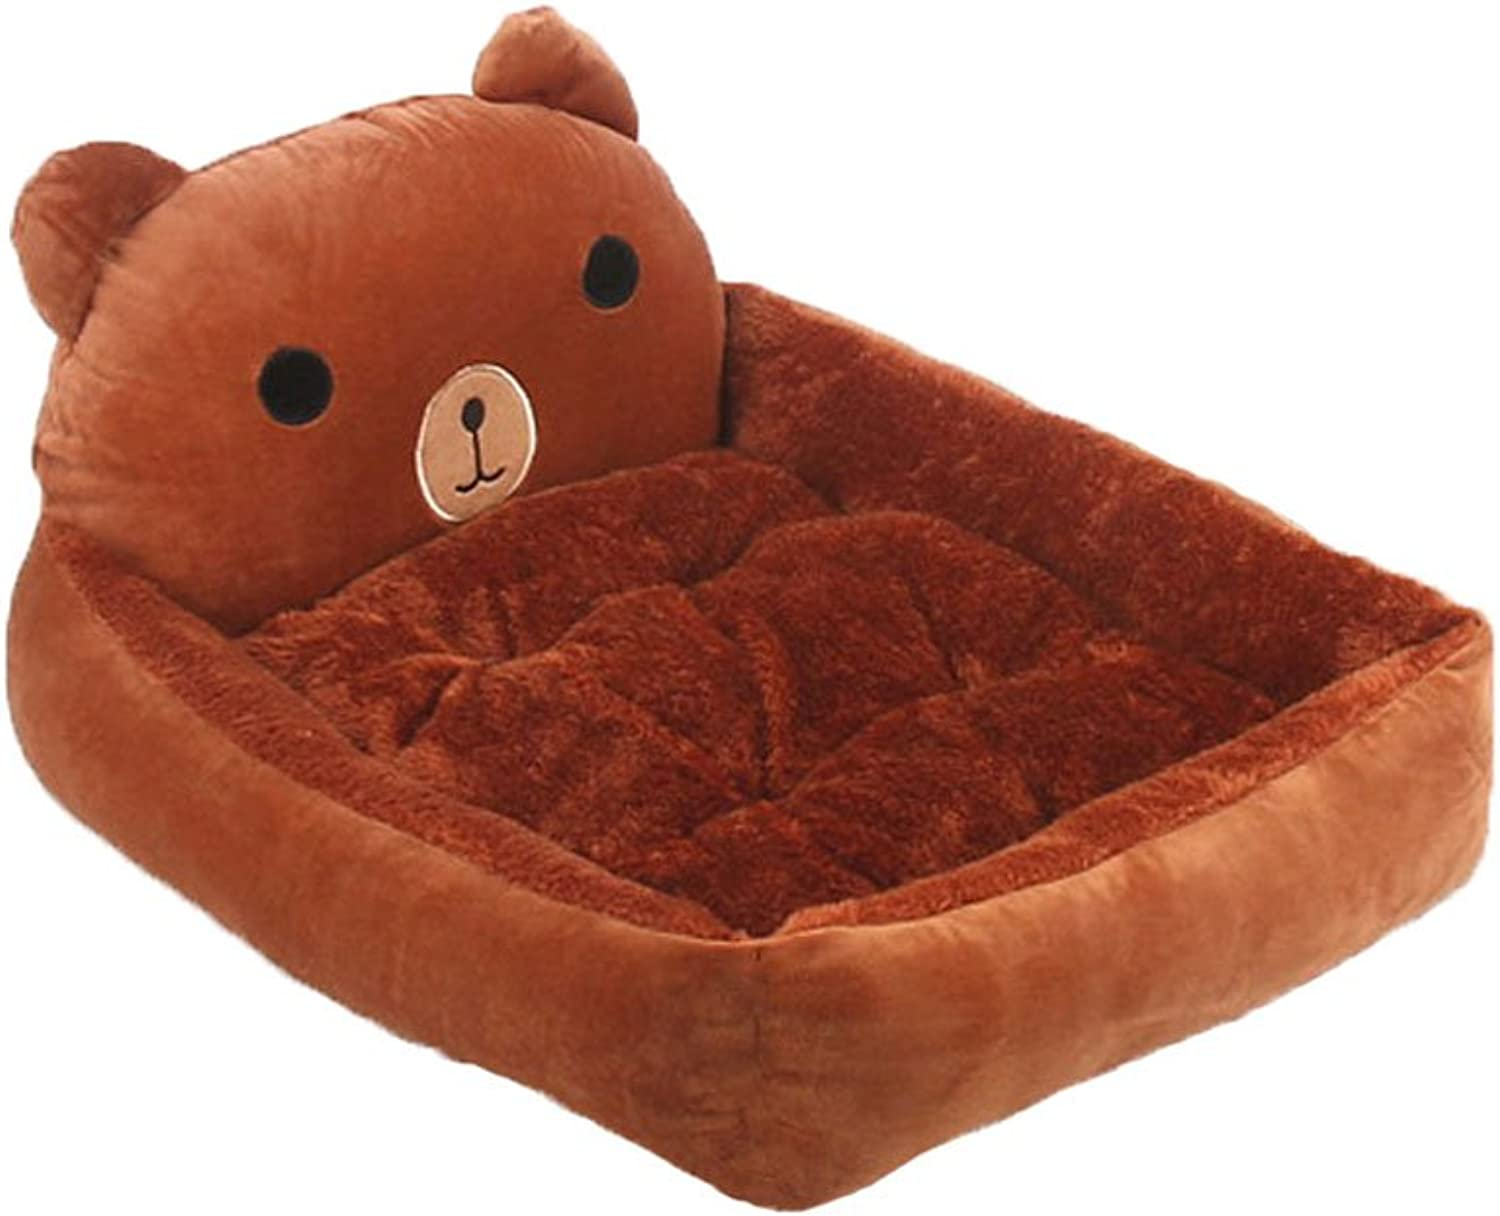 GHMM Pet Bed Arctic Cashmere Fabric Dog House Four Seasons Universal Slip Soft Comfort Cool Breathable And Durable Warm Pet bed (color   BROWN, Size   M)